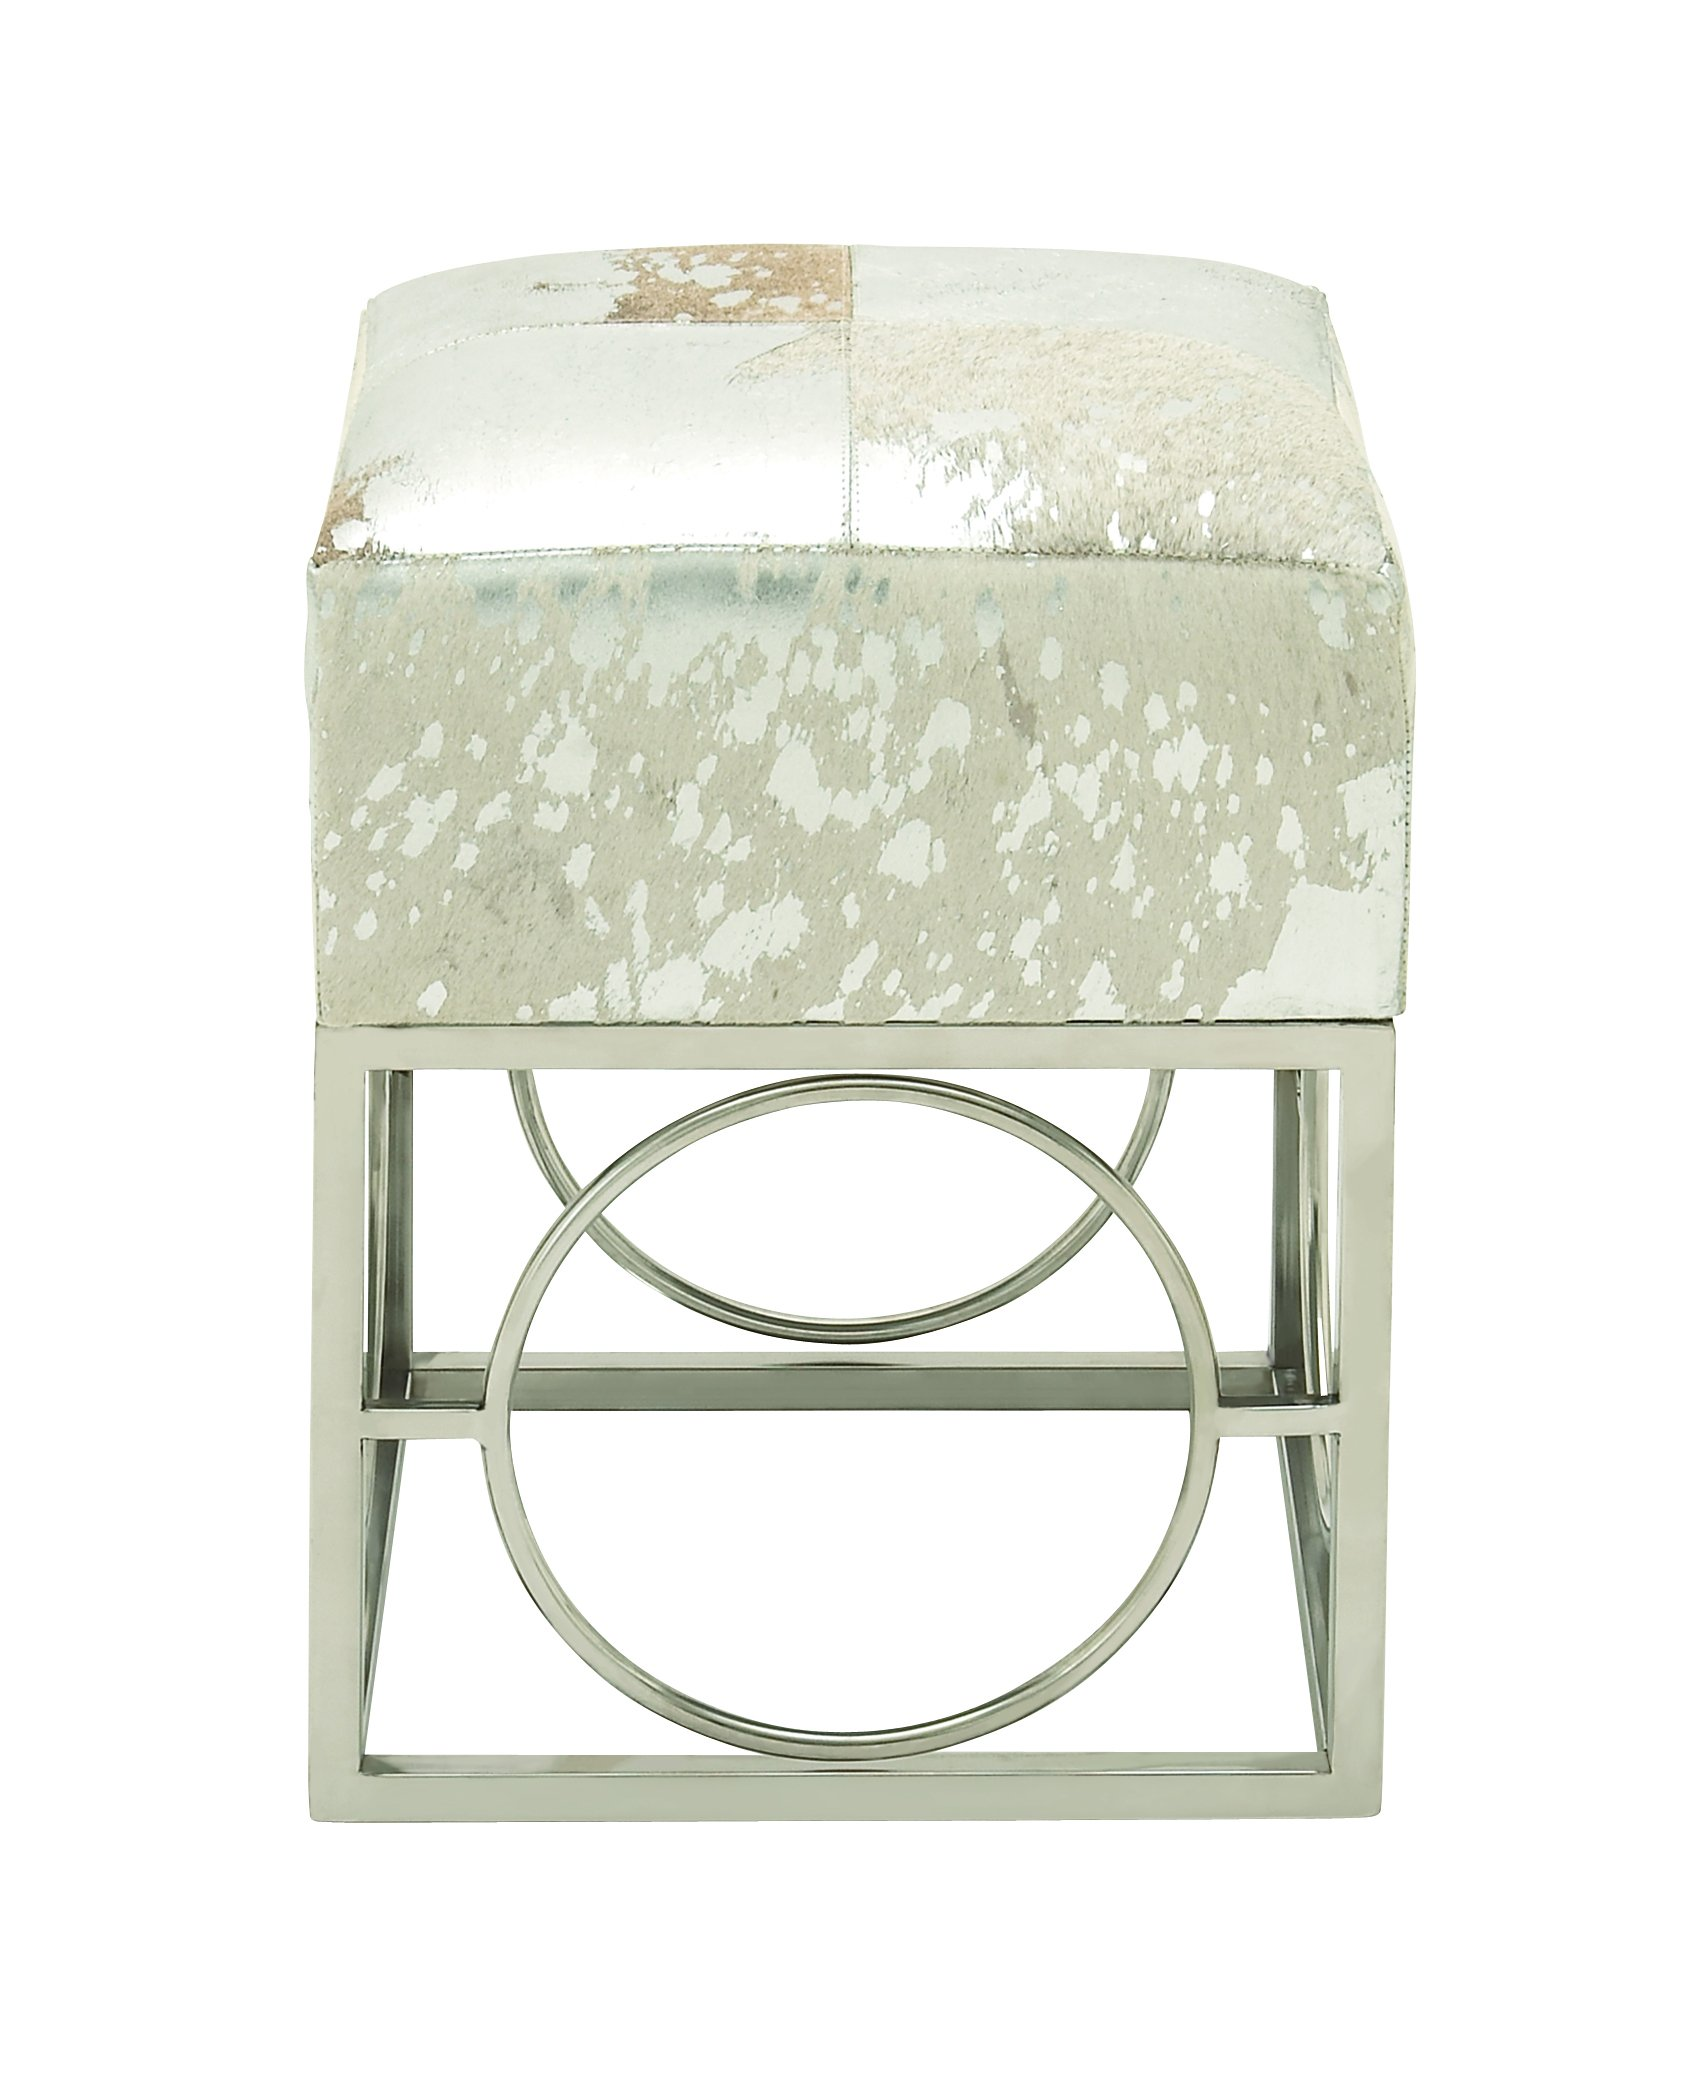 Deco 79 95942 Stainless Steel Leather Hide Silver Stool, 16'' x 22''